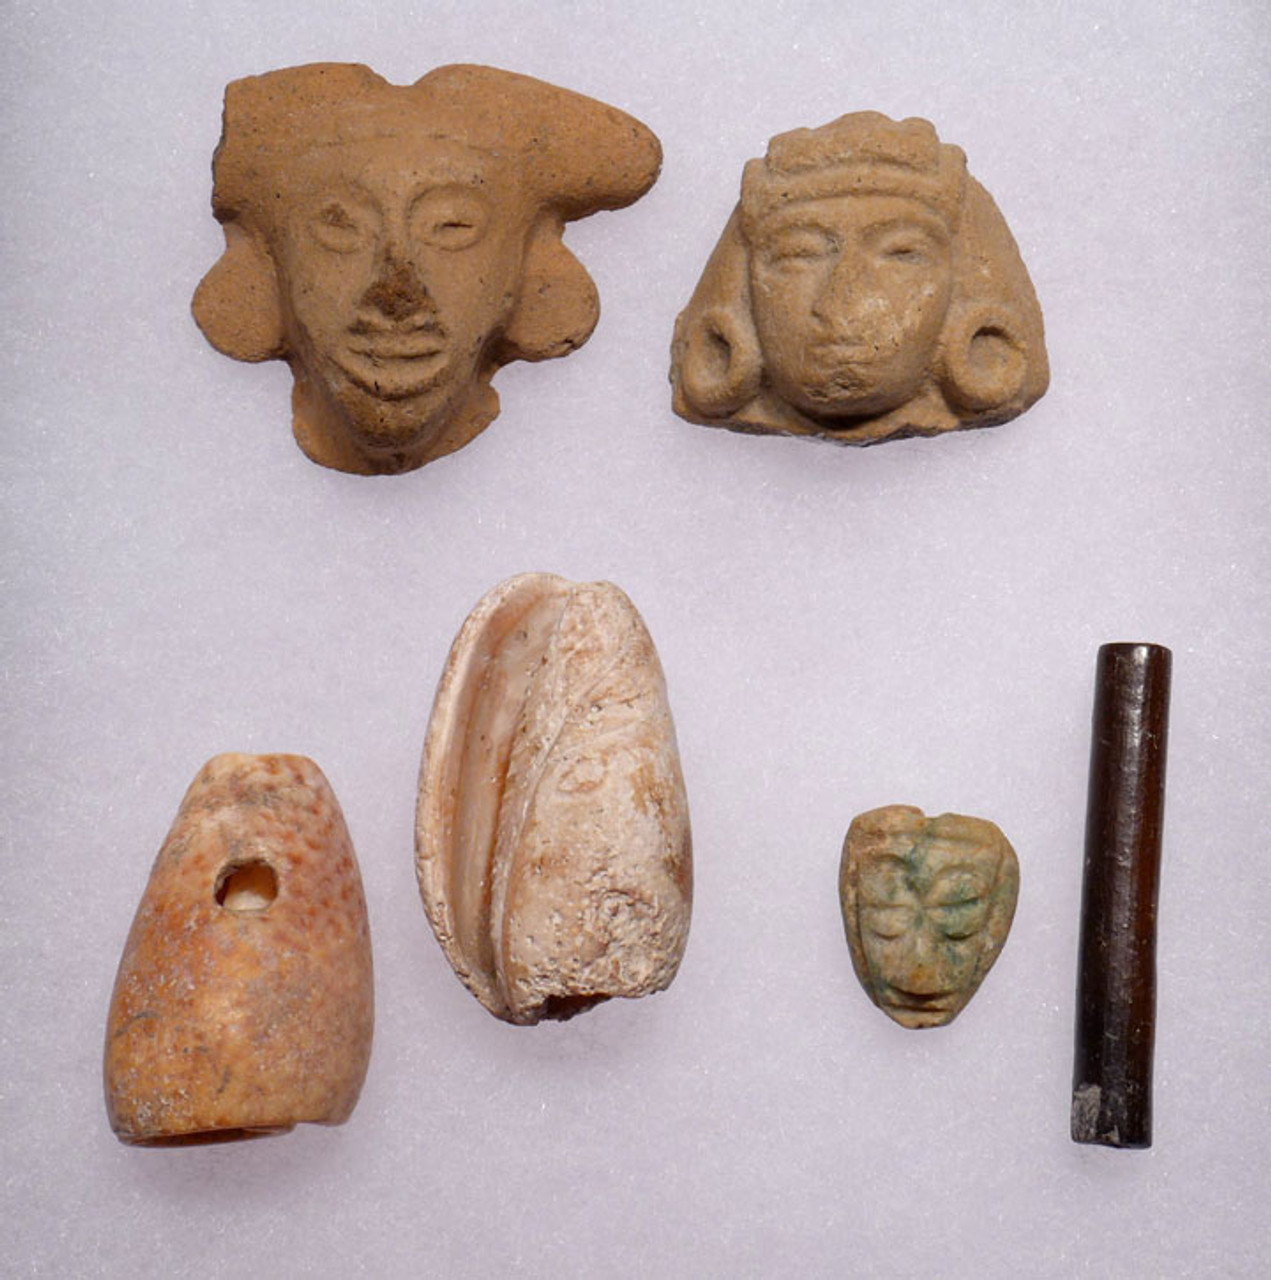 PC126  - EDUCATIONAL FINE GRADE 6 PIECE PRE-COLUMBIAN MEXICO COLLECTION OF FIGURAL AND BODY ADORNMENT OBJECTS